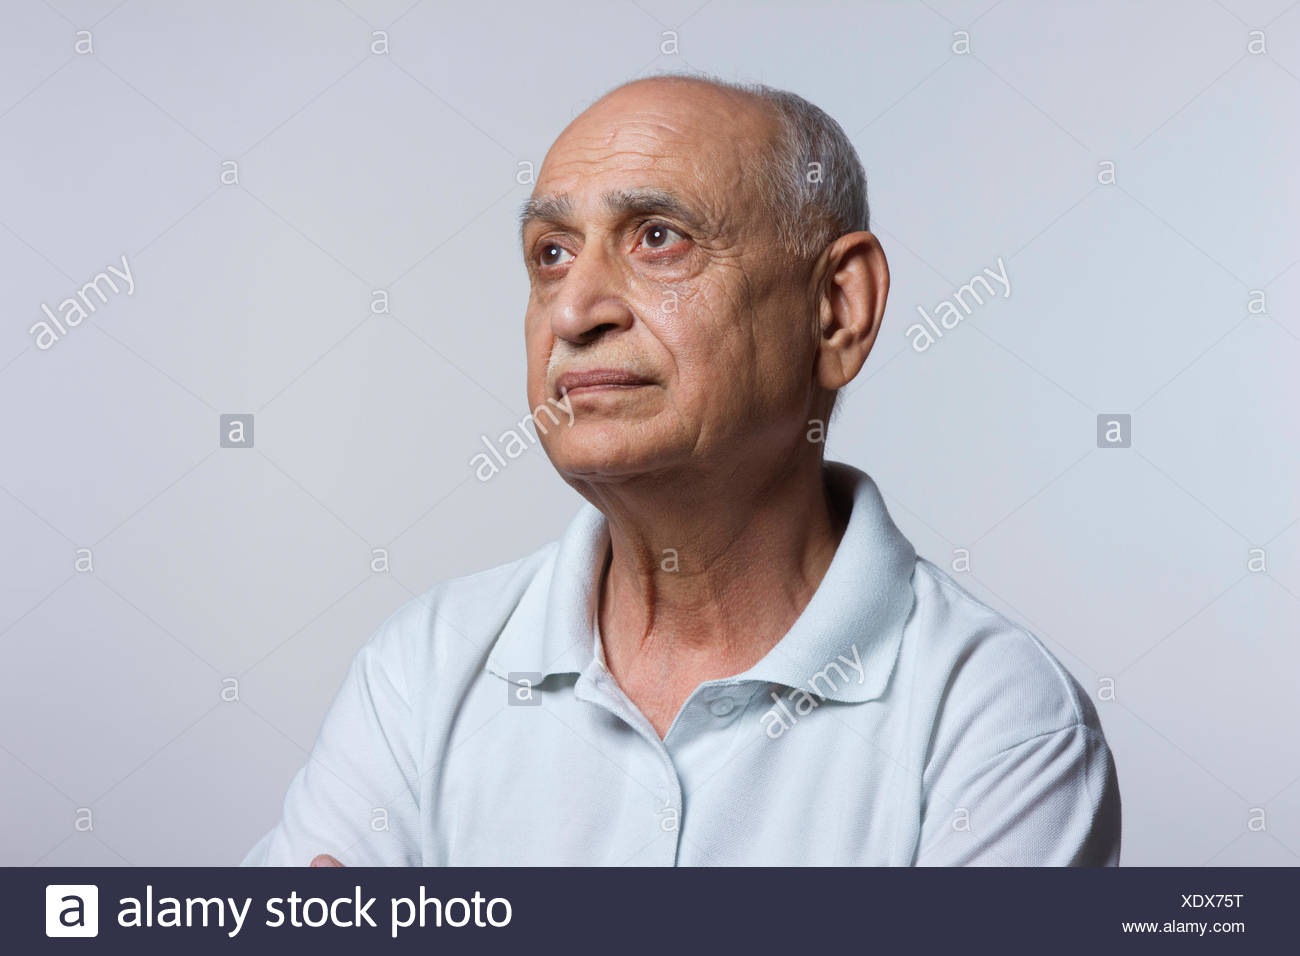 side profile of old man stock photo 283932820 alamy